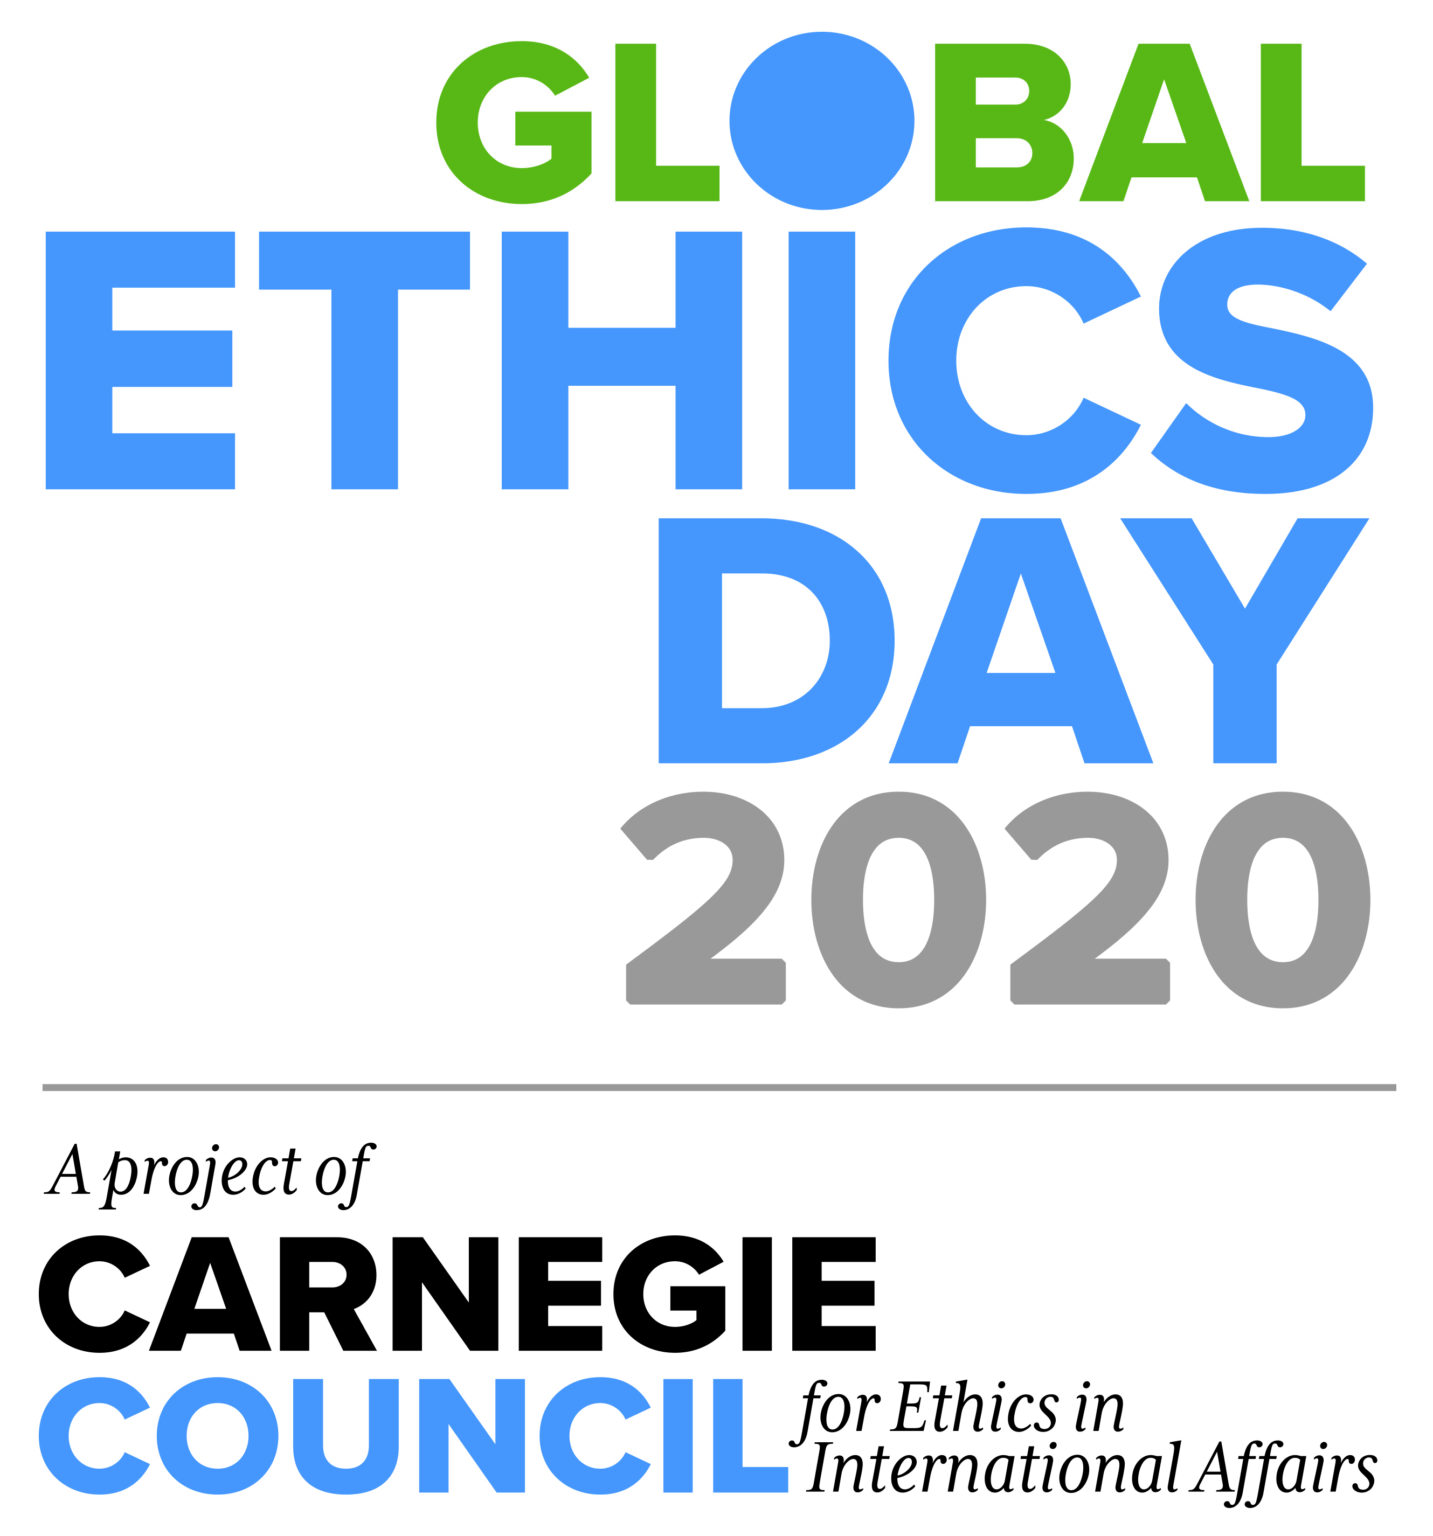 Today is #GlobalEthicsDay2020